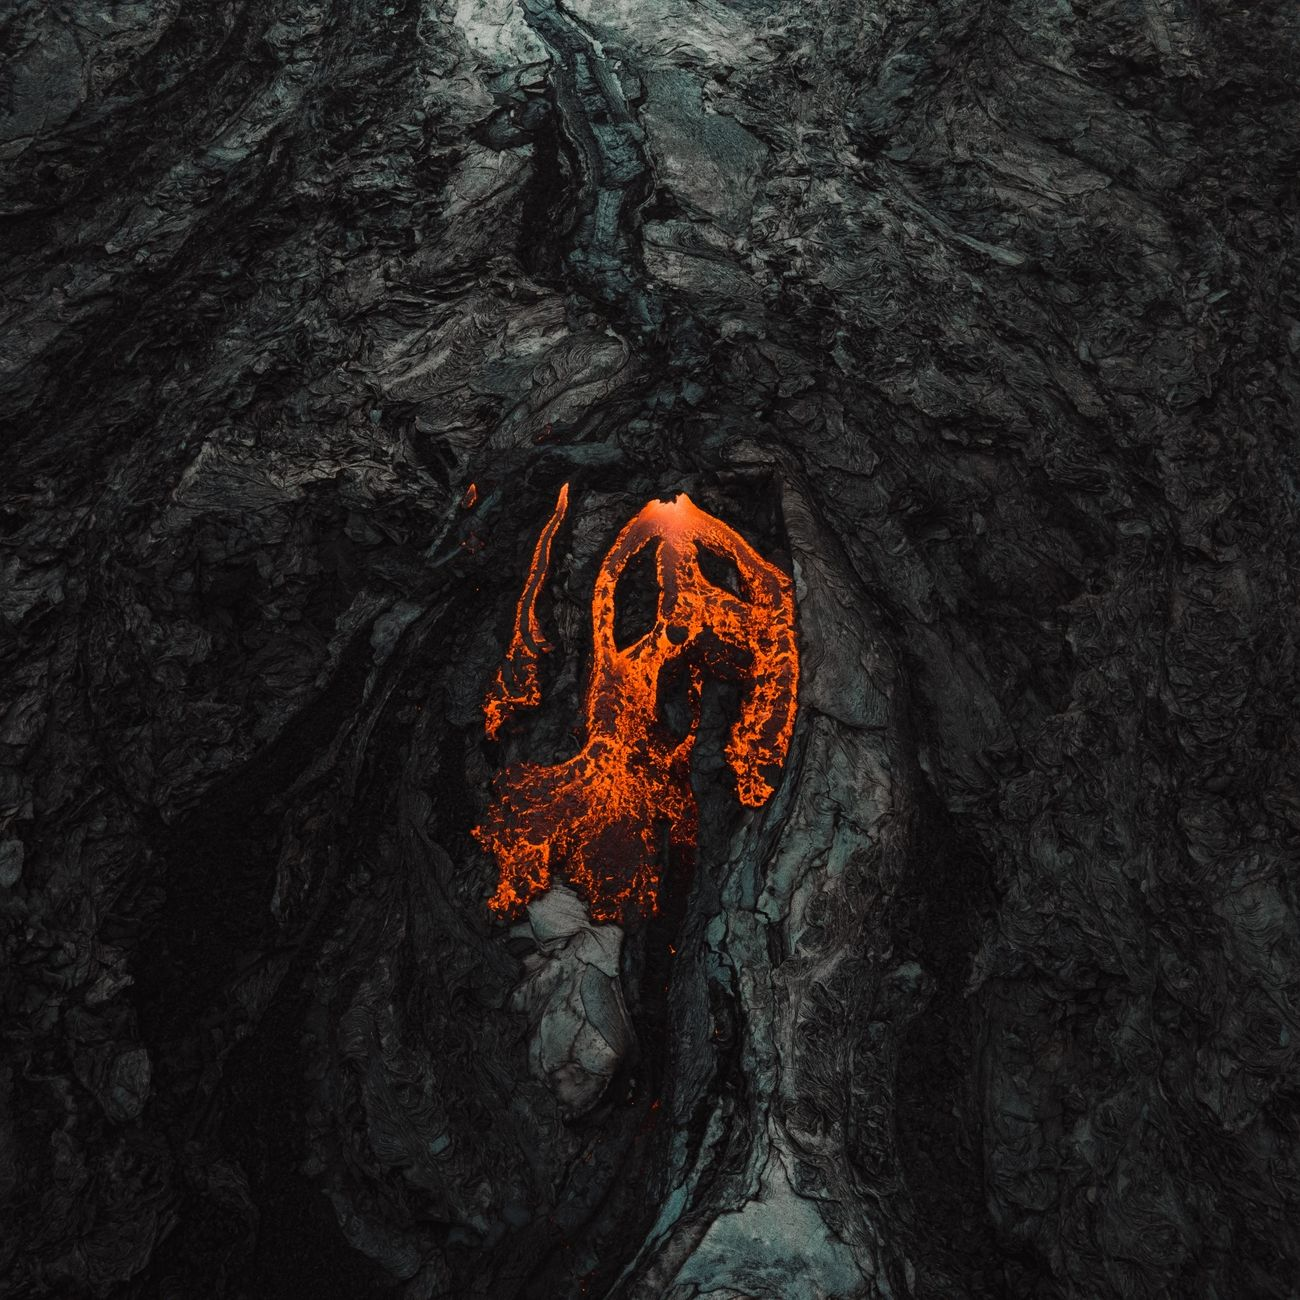 VOLCANO SCREAM Shot on DJI MAVIC AIR 2 . . They say the new volcano on the Reykjanes peninsula is a monster.  I was lucky to walk around a 4km square lava field and fly above a roaring bubbling crater and the experience was unique. There nothing like obse